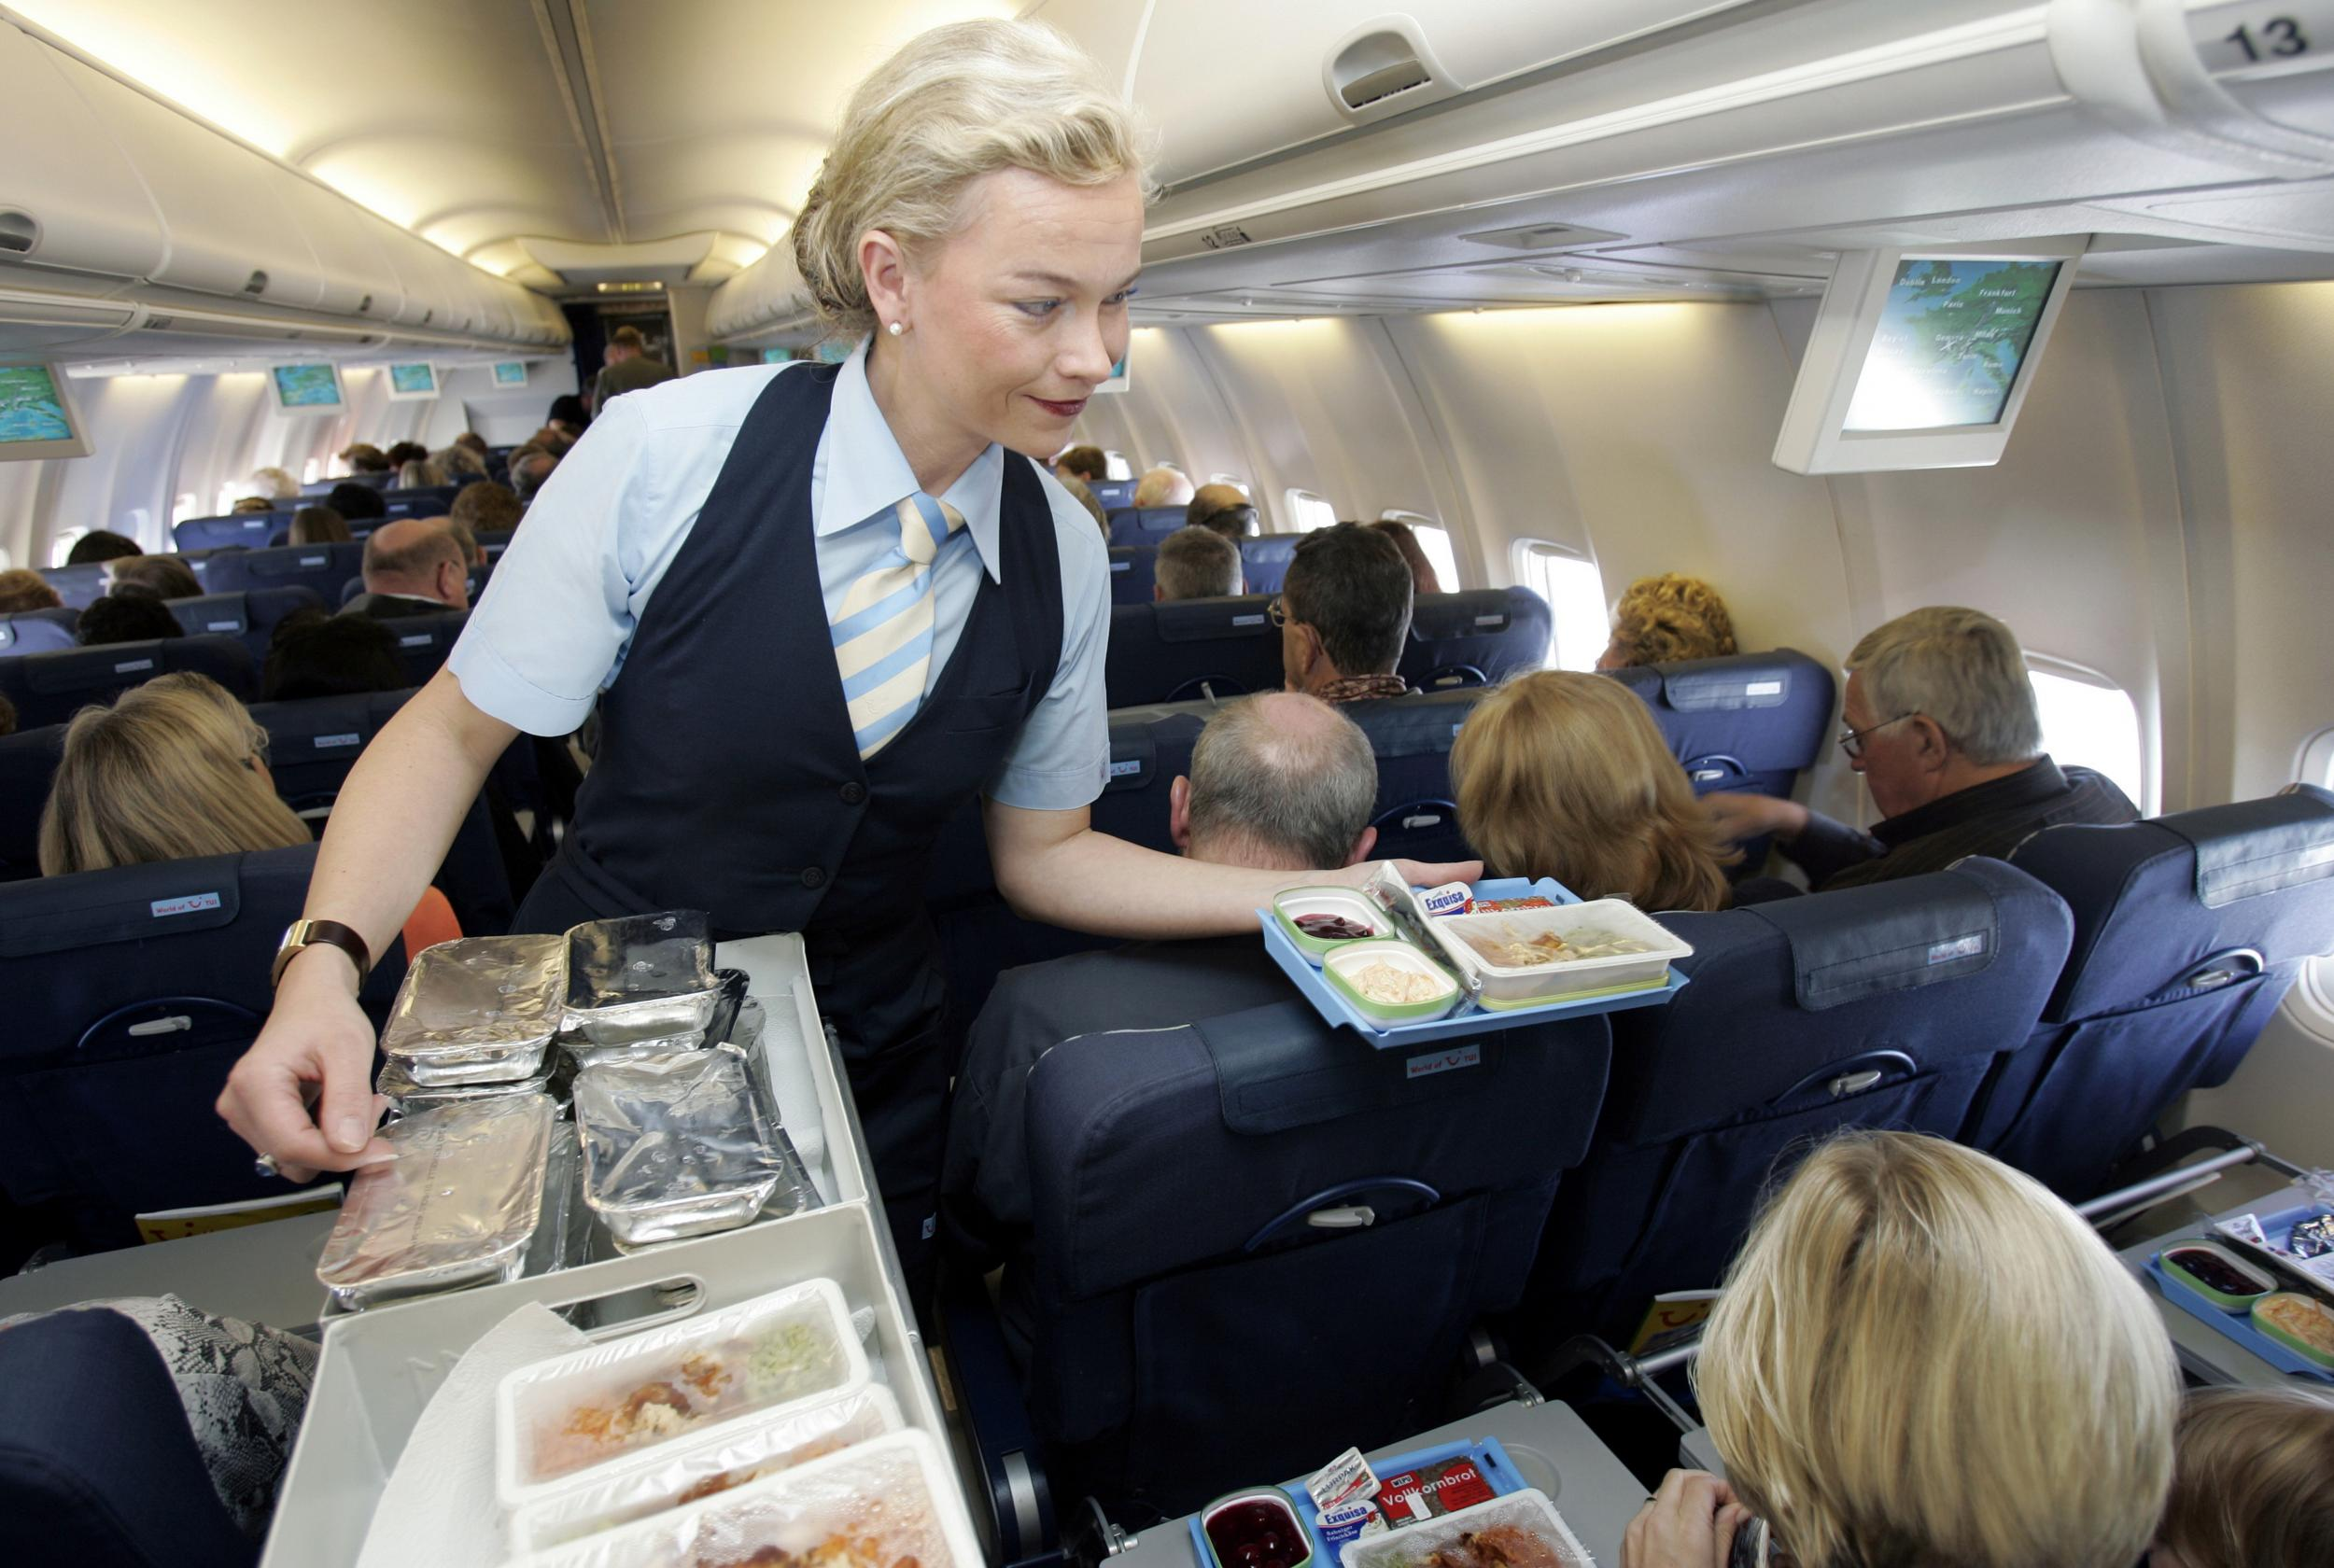 A flight attendant has a theory about 'unhealthy' airplane food like eggs and even fruit